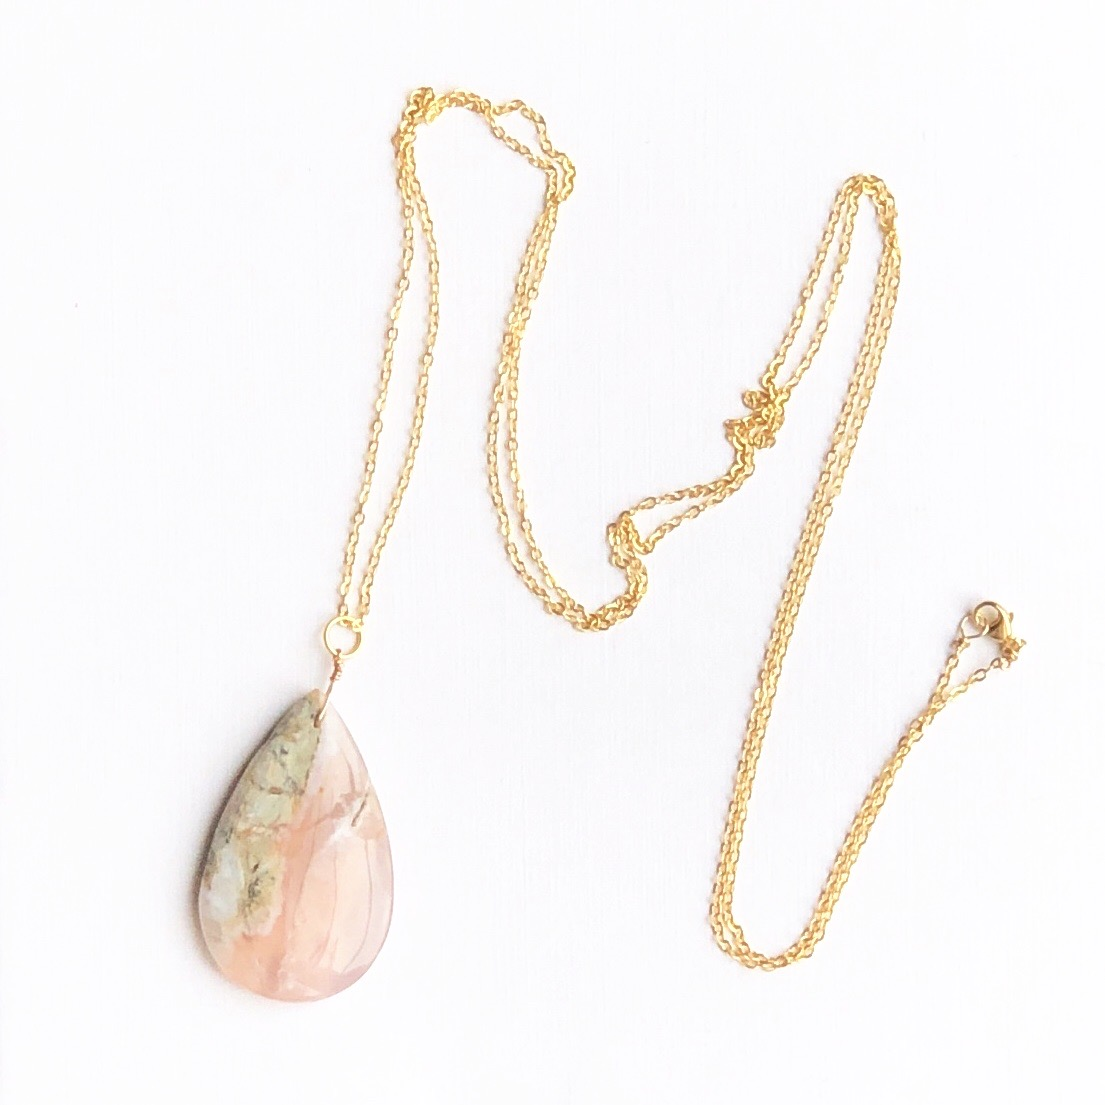 Indy & Noa goldfilled calcedone necklace